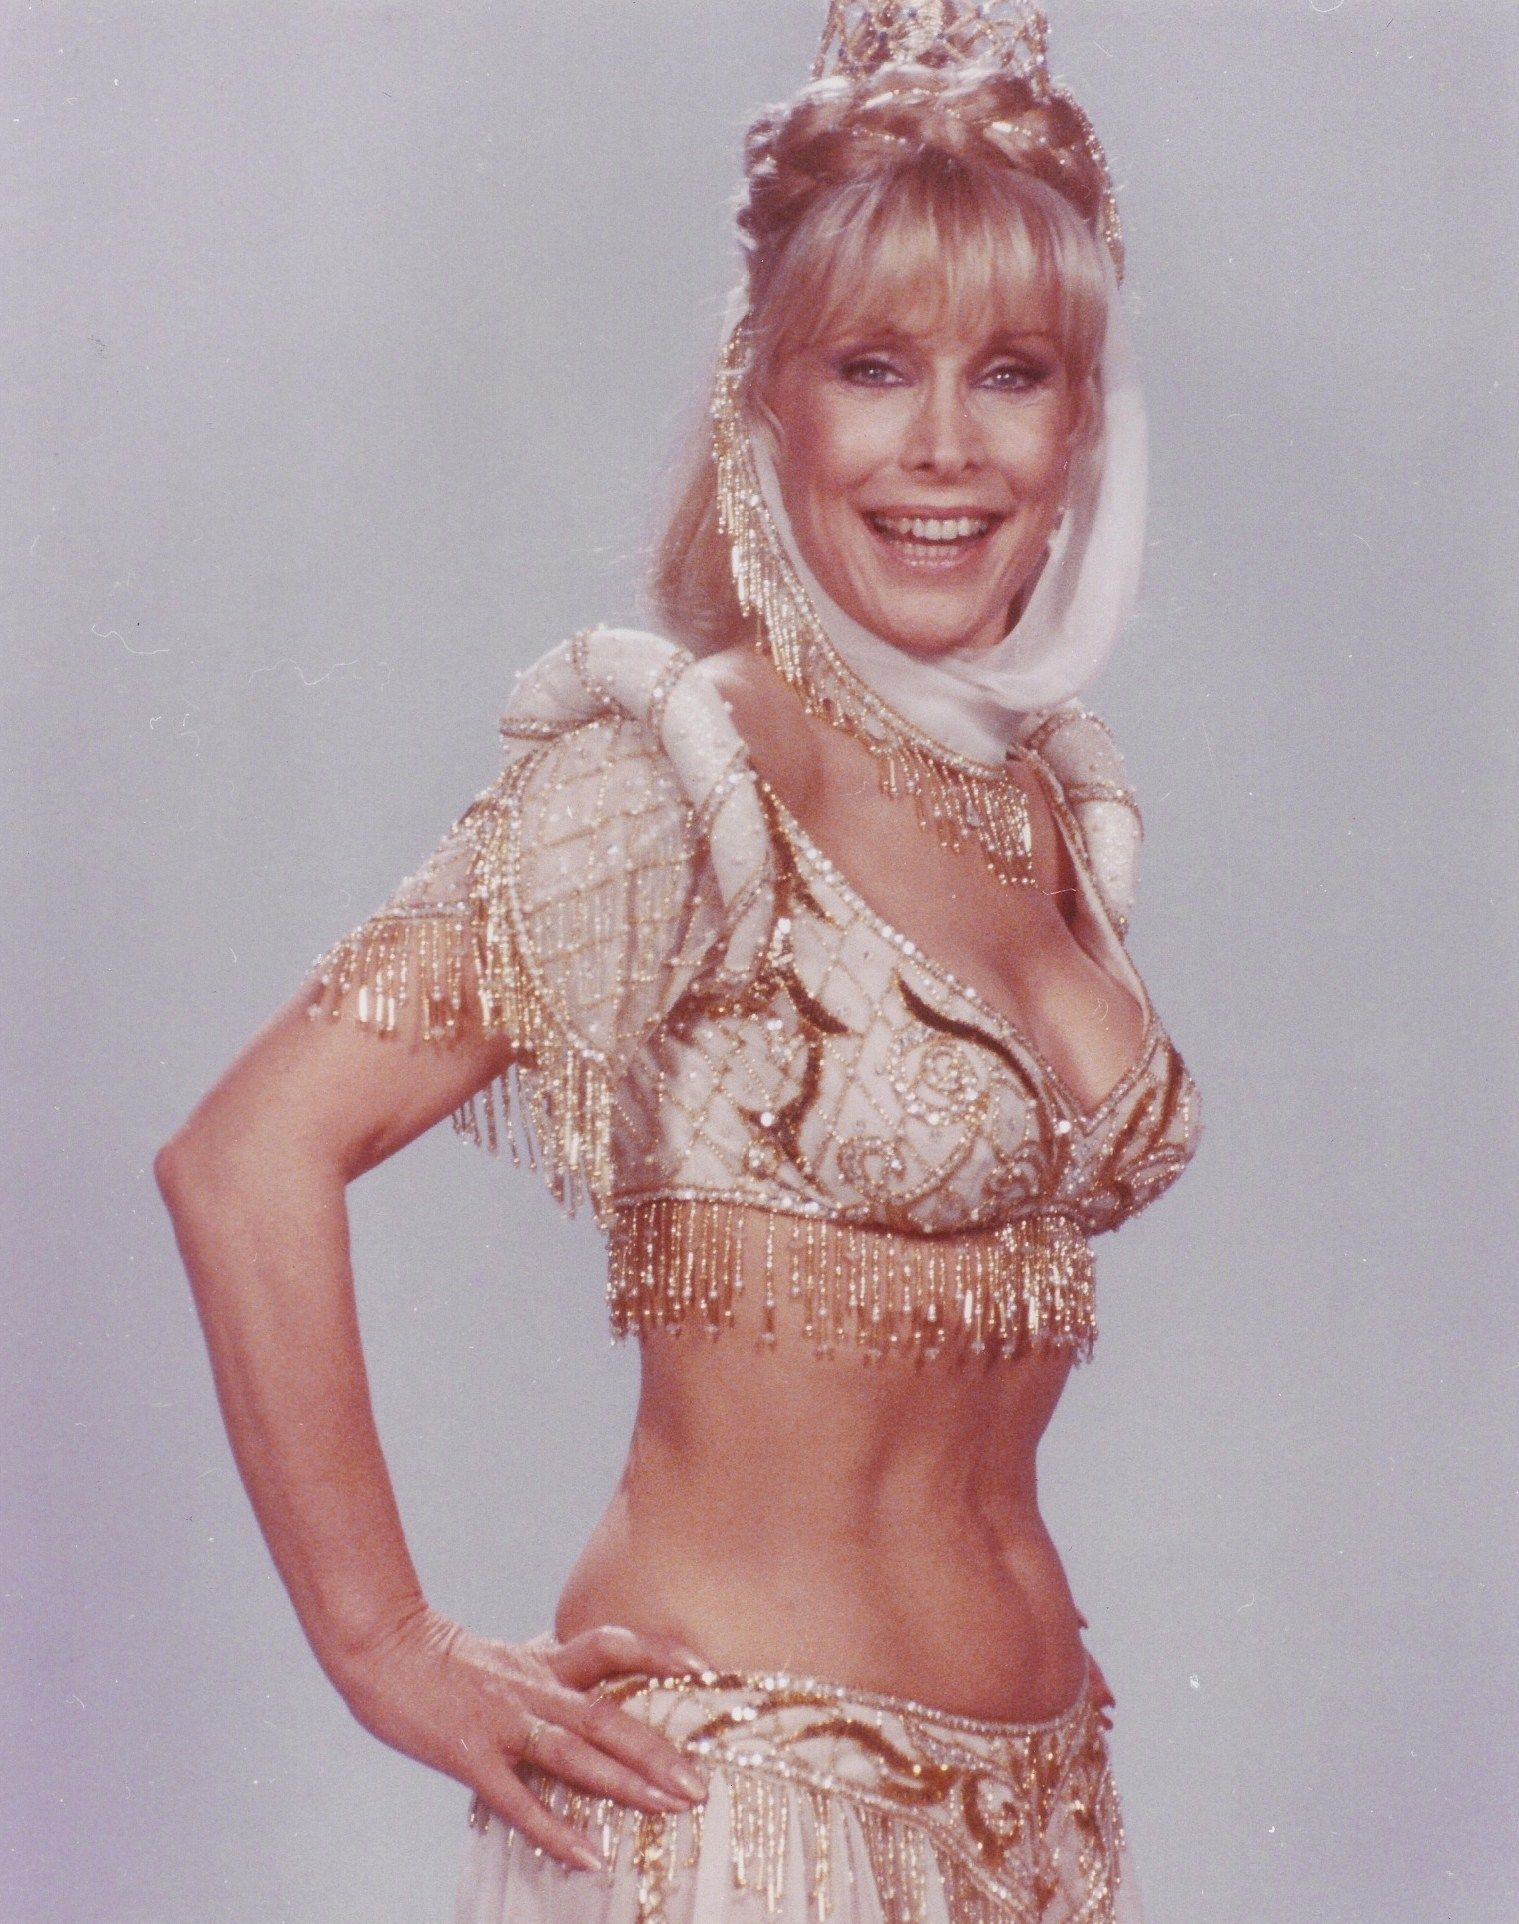 Shall agree Barbara eden nude photos share your